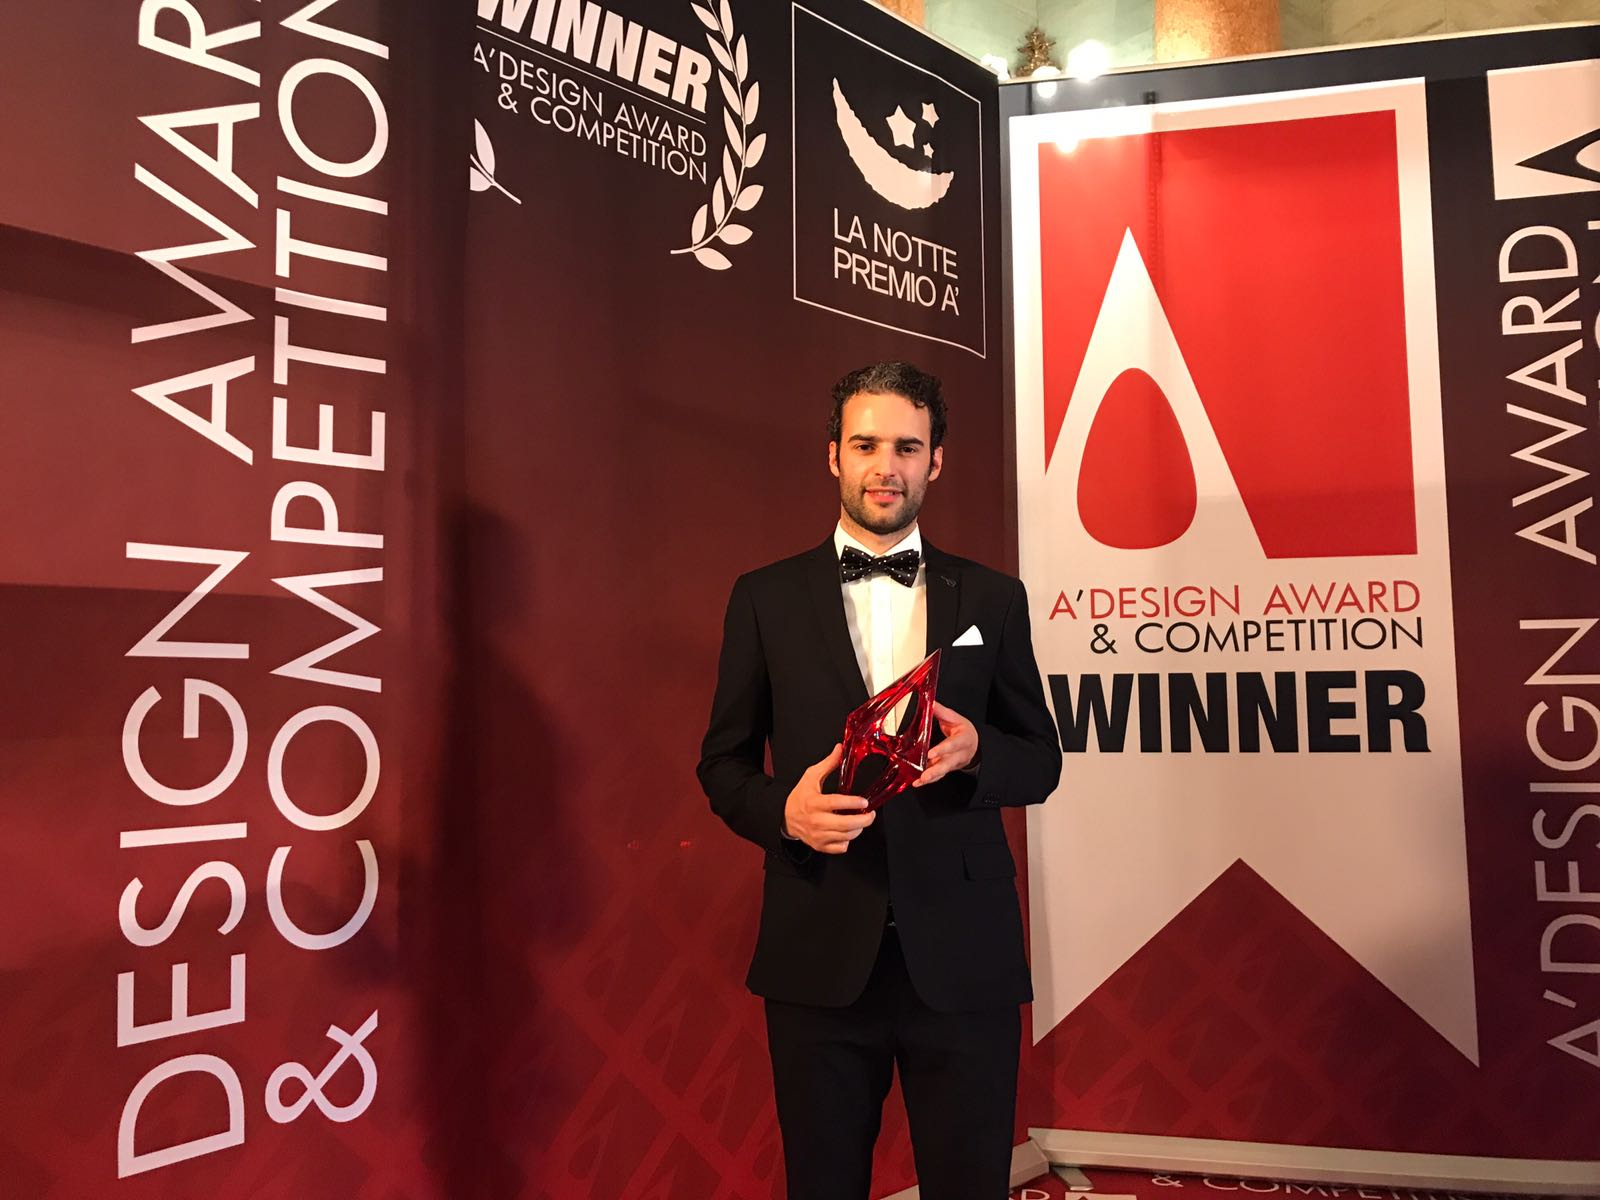 GlammFire premiada em Itália no A'Design Award & Competition